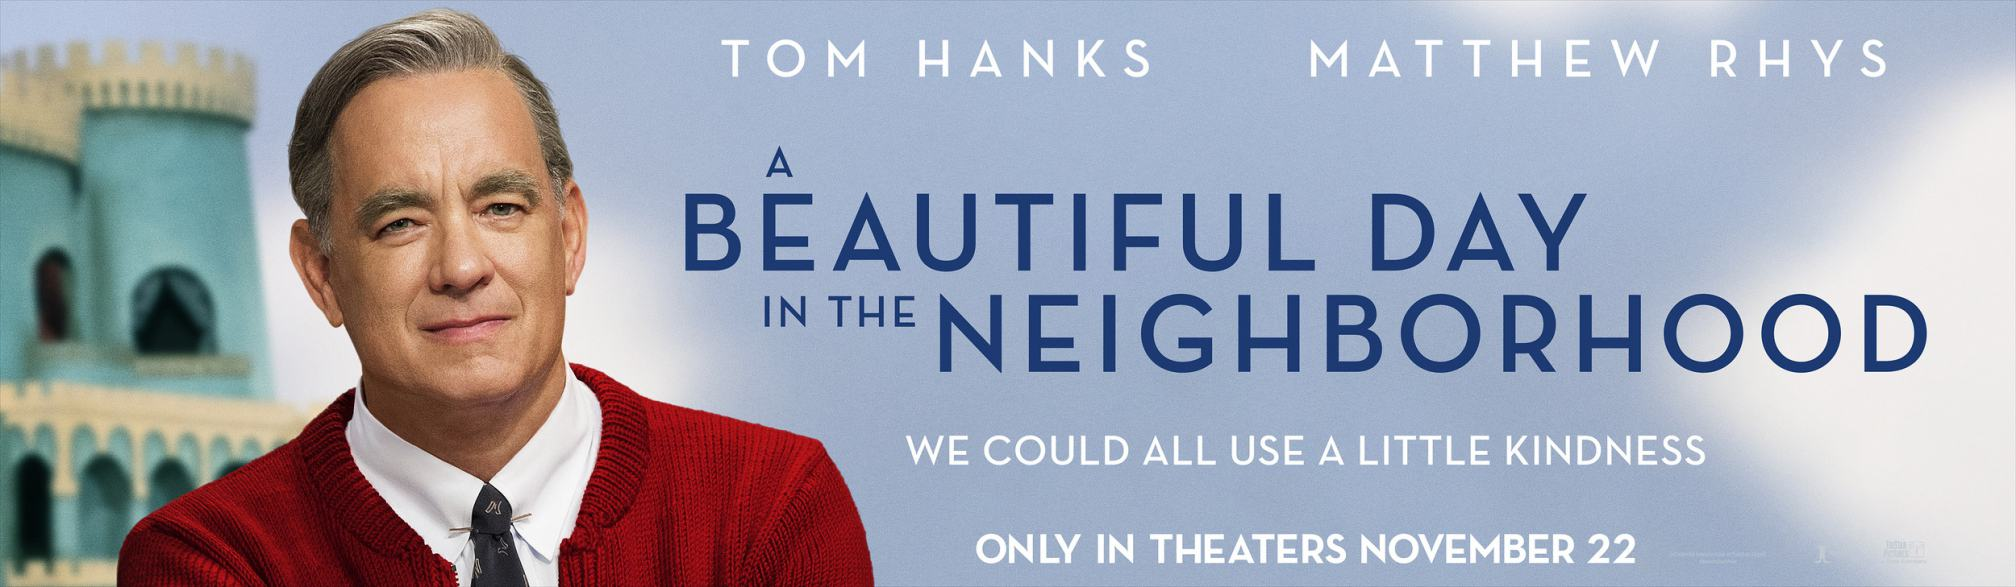 A Beautiful Day in the Neighborhood Poster #2